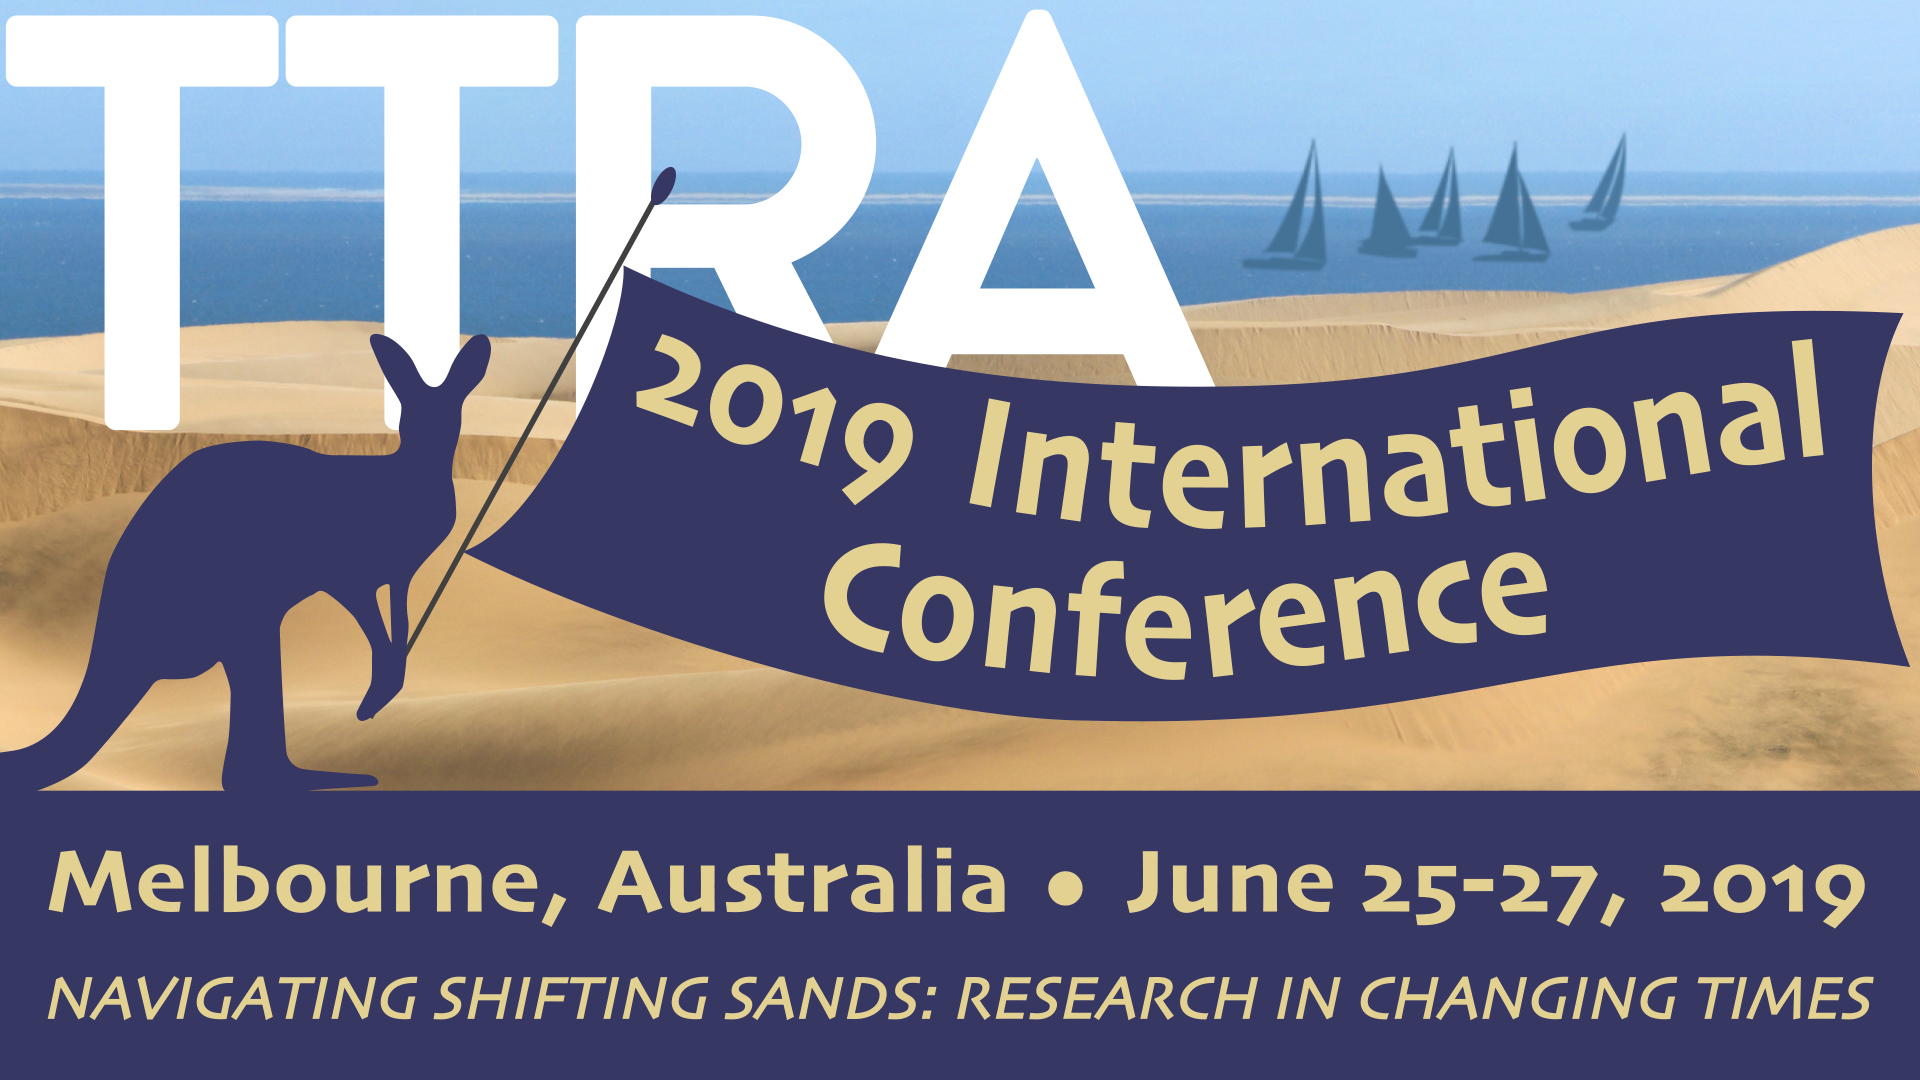 2019 International Conference | Melbourne, Australia